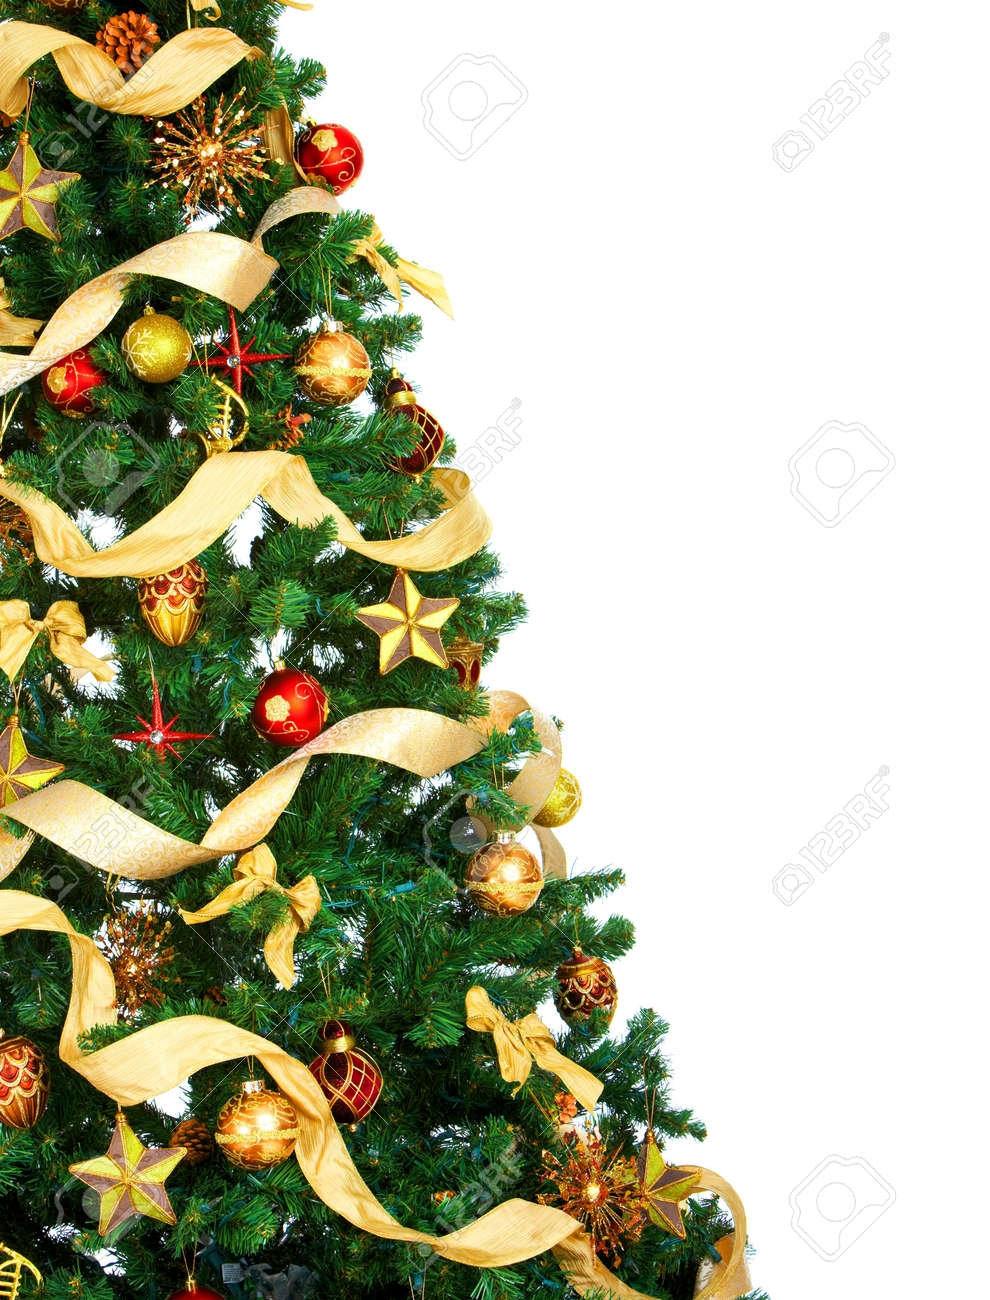 Christmas tree and decorations over white background stock photo christmas tree and decorations over white background stock photo 3885938 voltagebd Choice Image